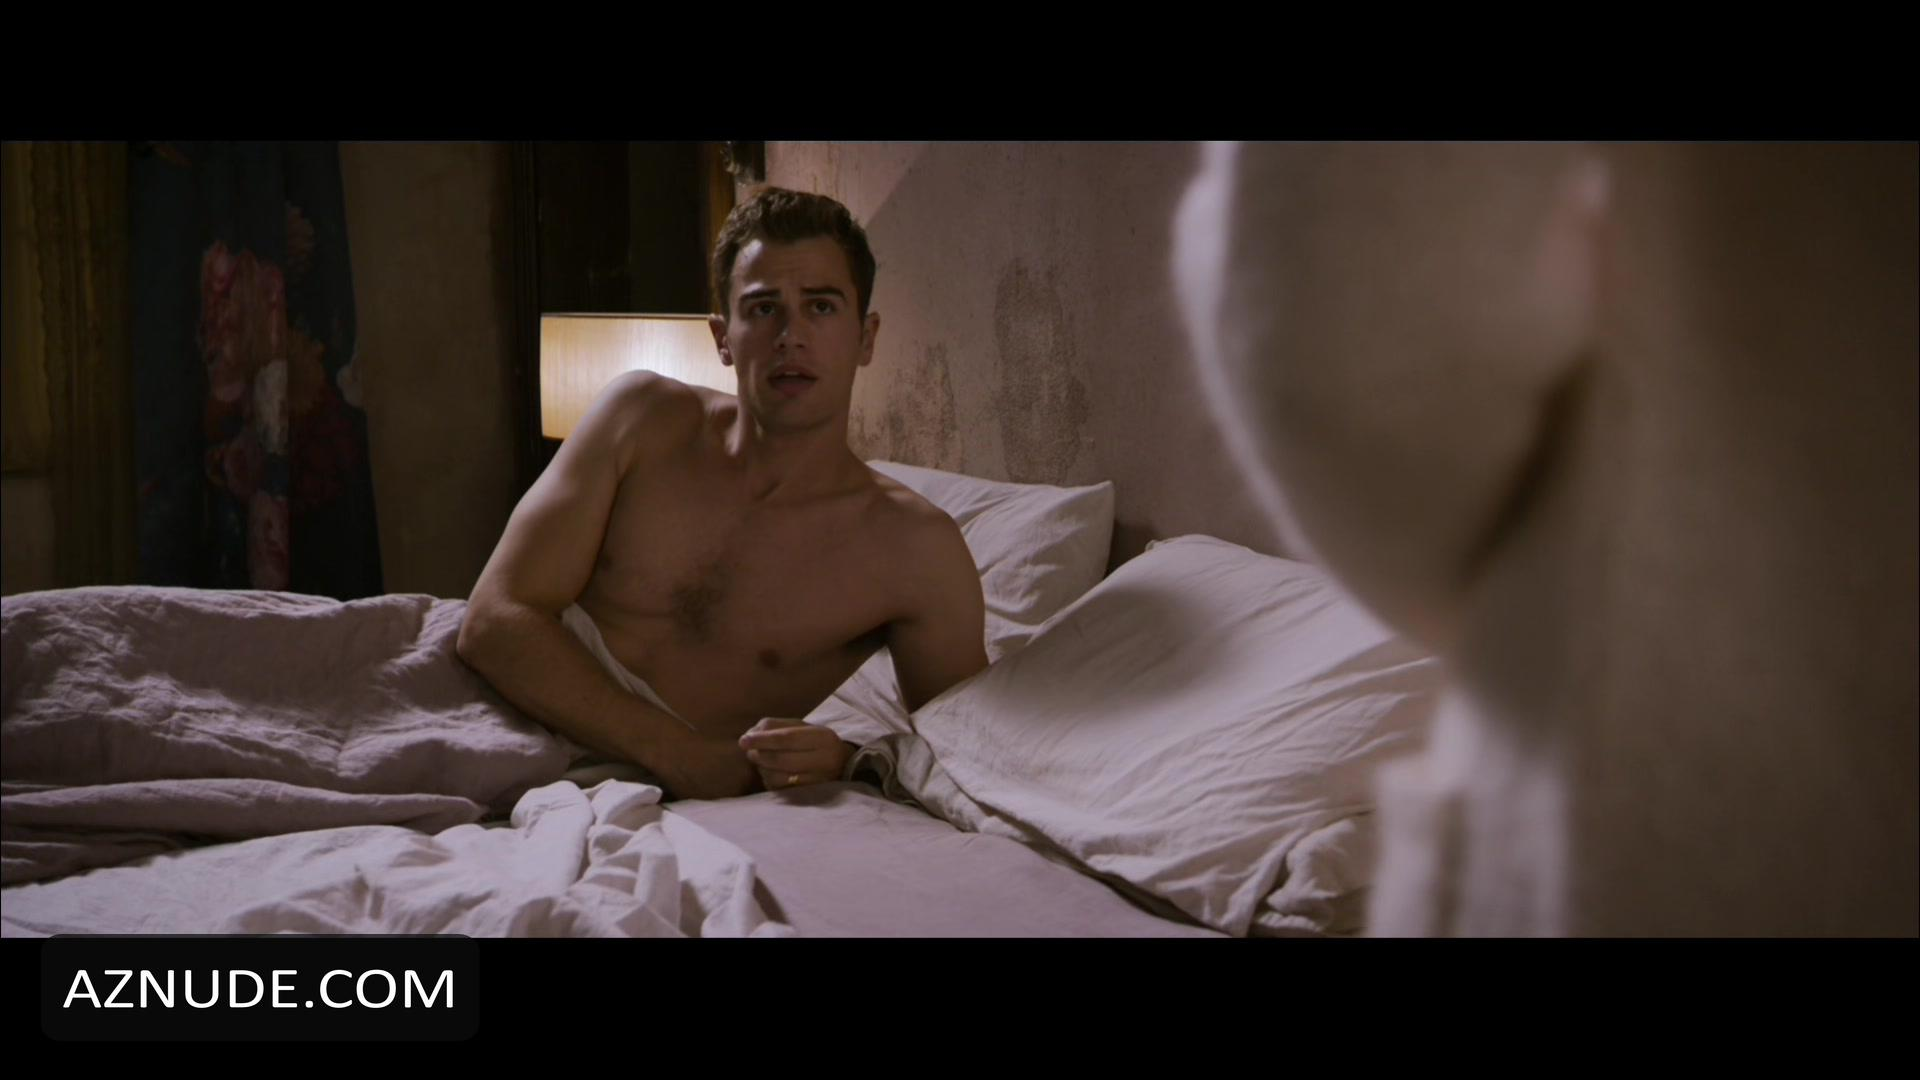 James nude theo For research: